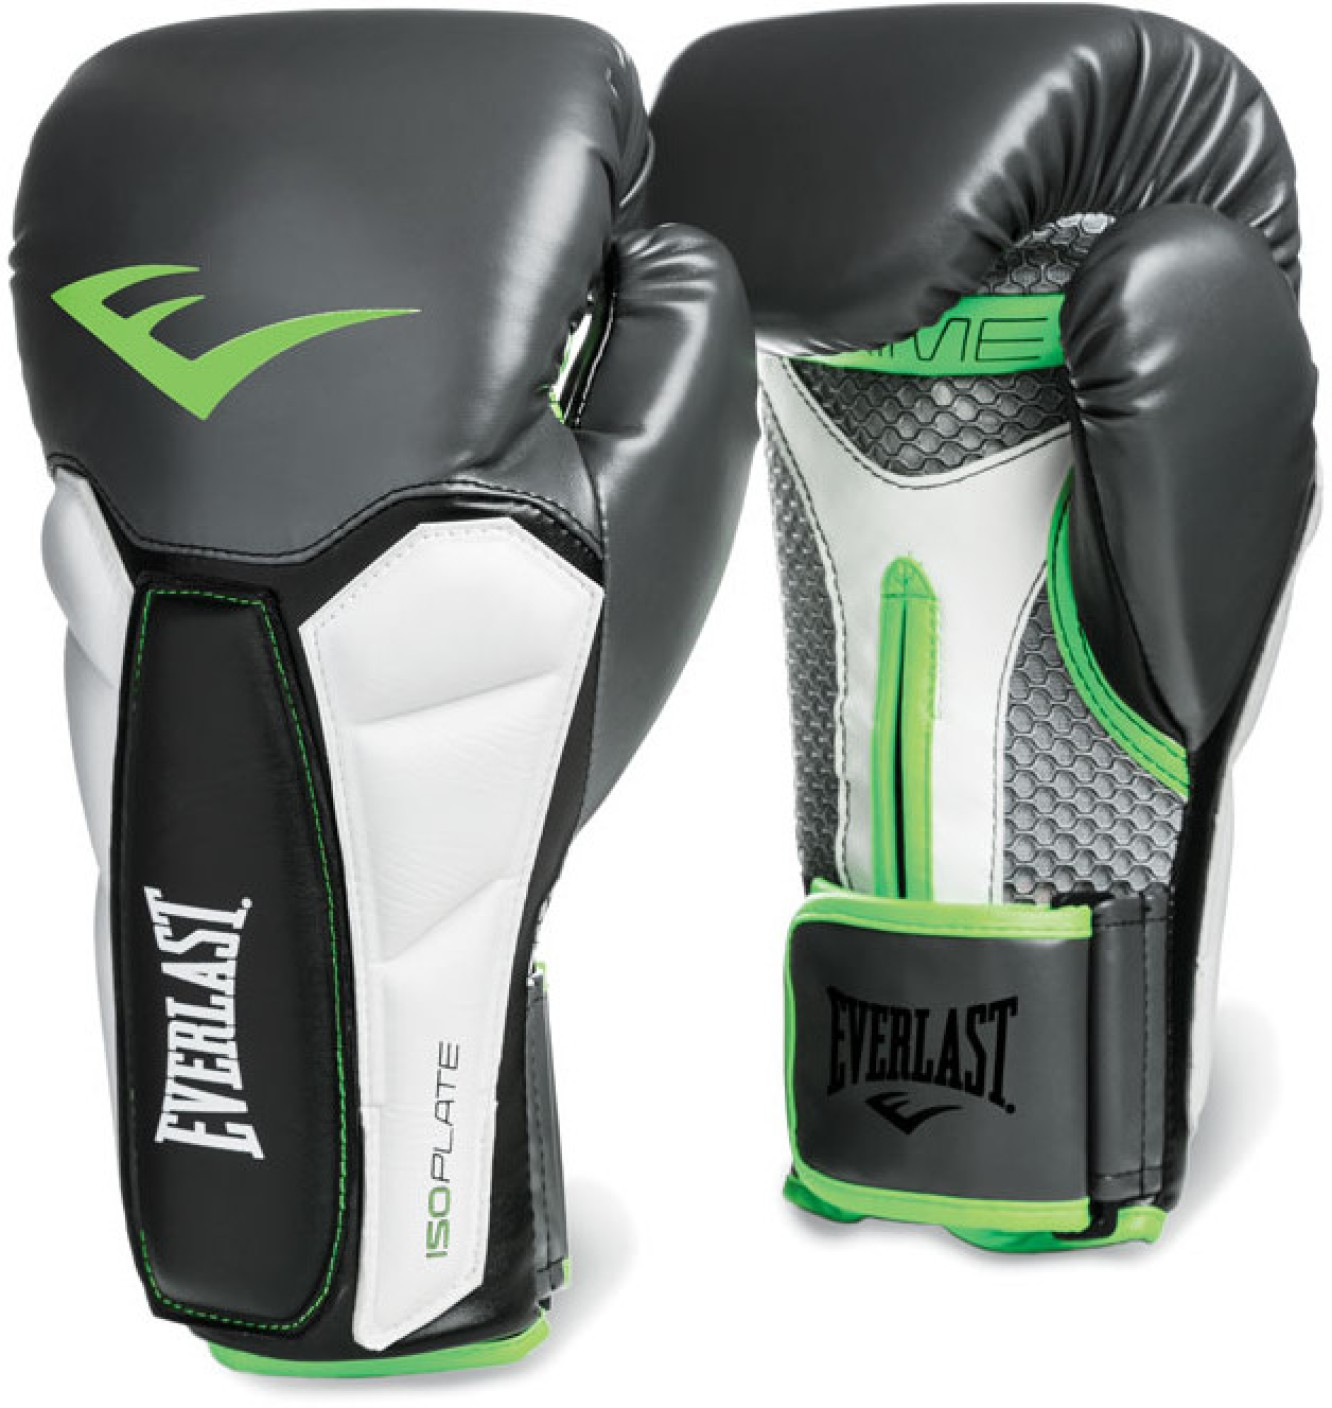 Everlast Fitness Gloves Mens: Everlast Prime Training Boxing Gloves (XL, Grey, Green